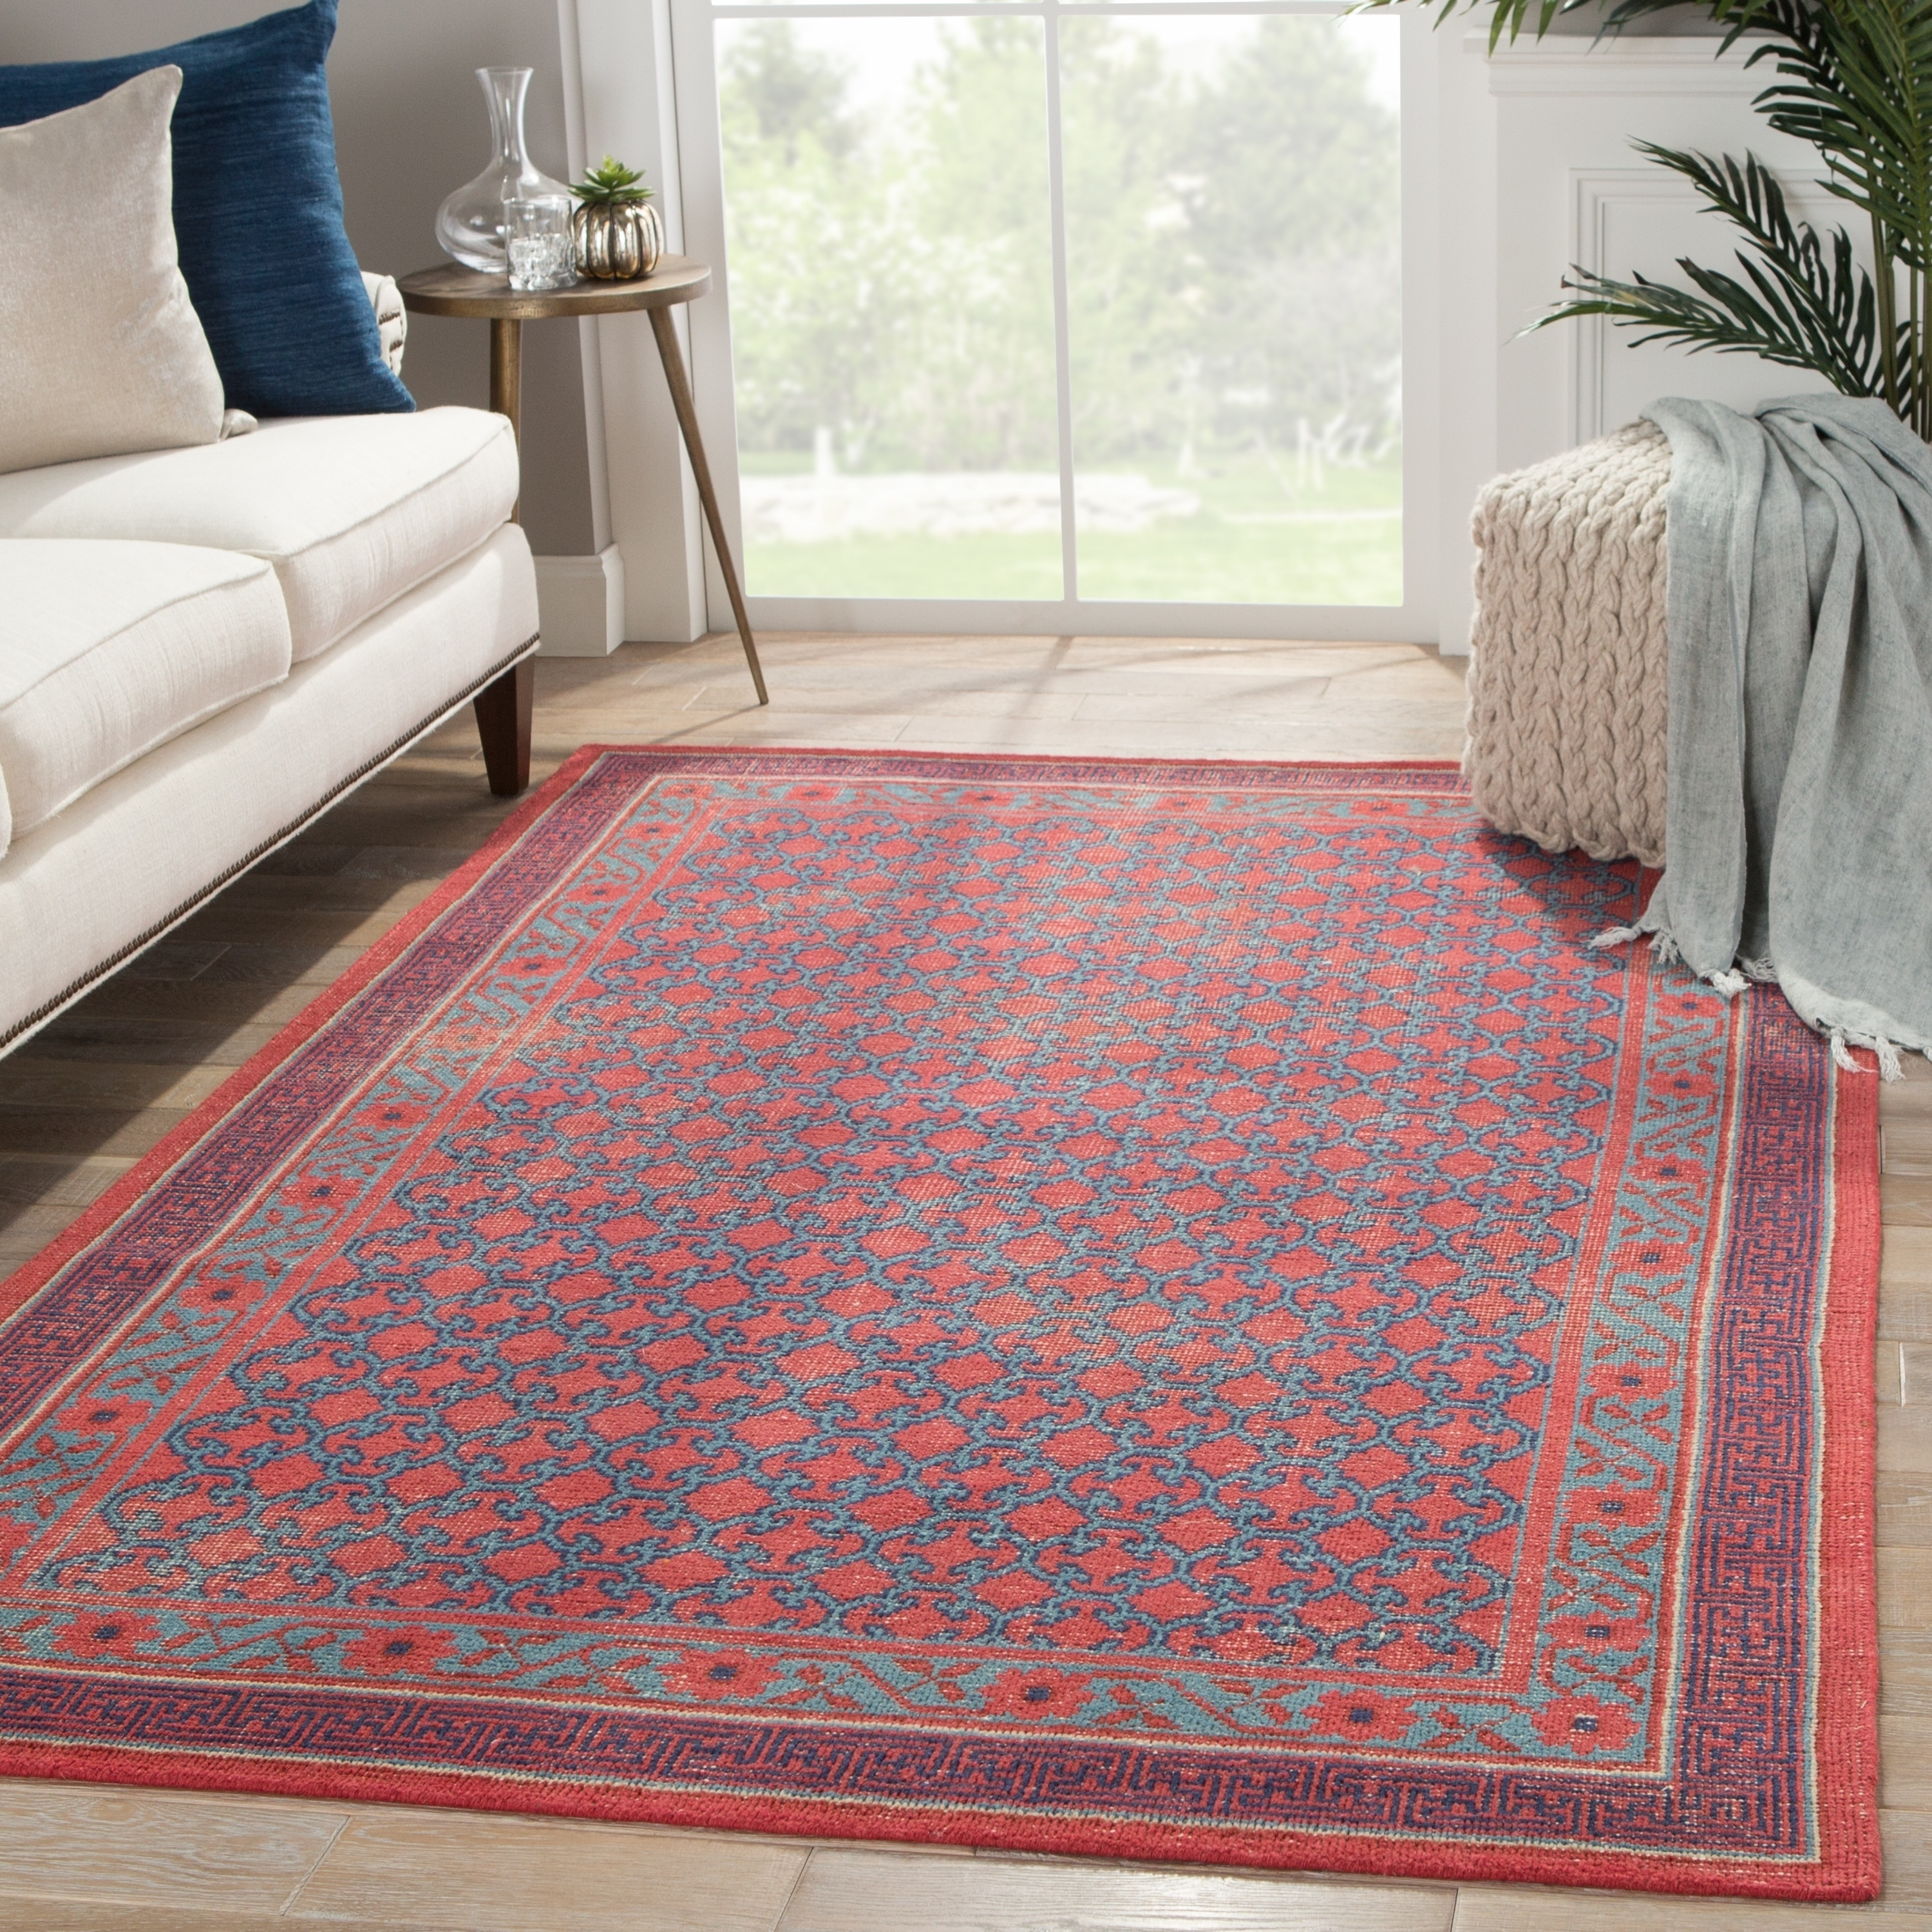 Juniper Home Hand-Knotted Borders Red Area Rug (2' X 3') ...